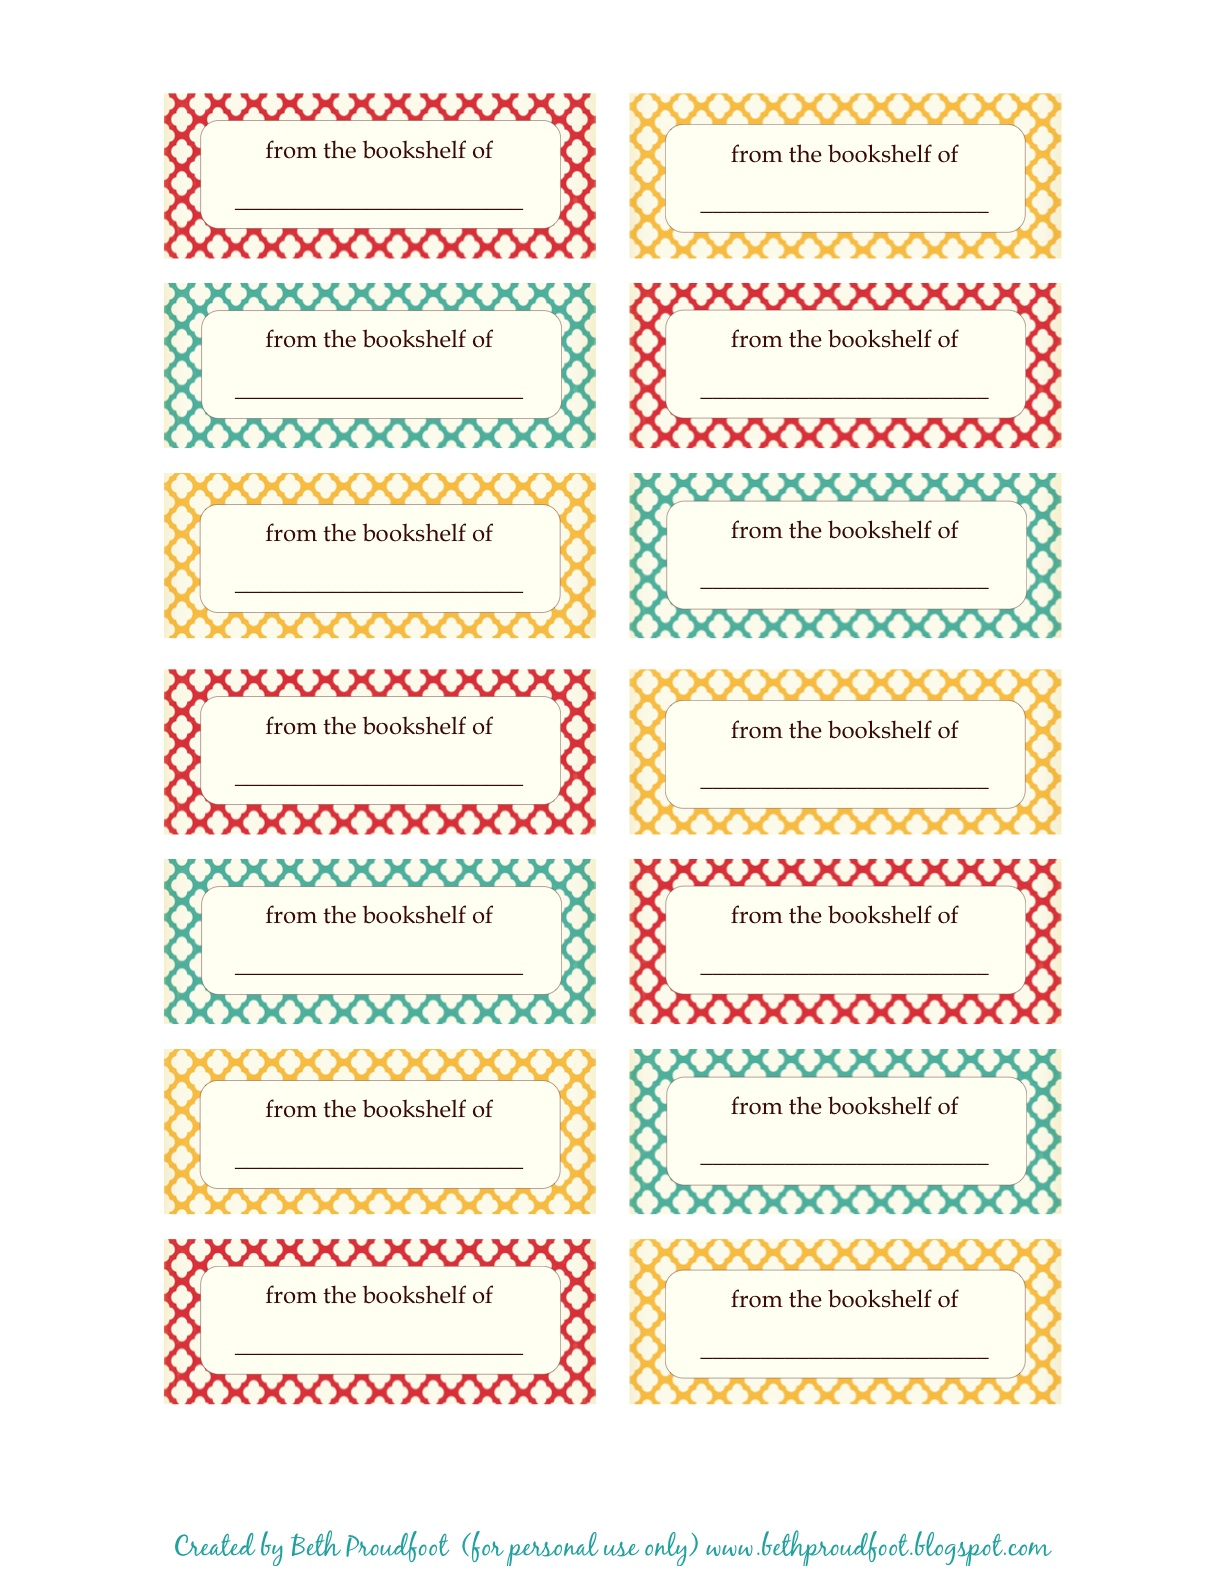 Free Printable Book Labels